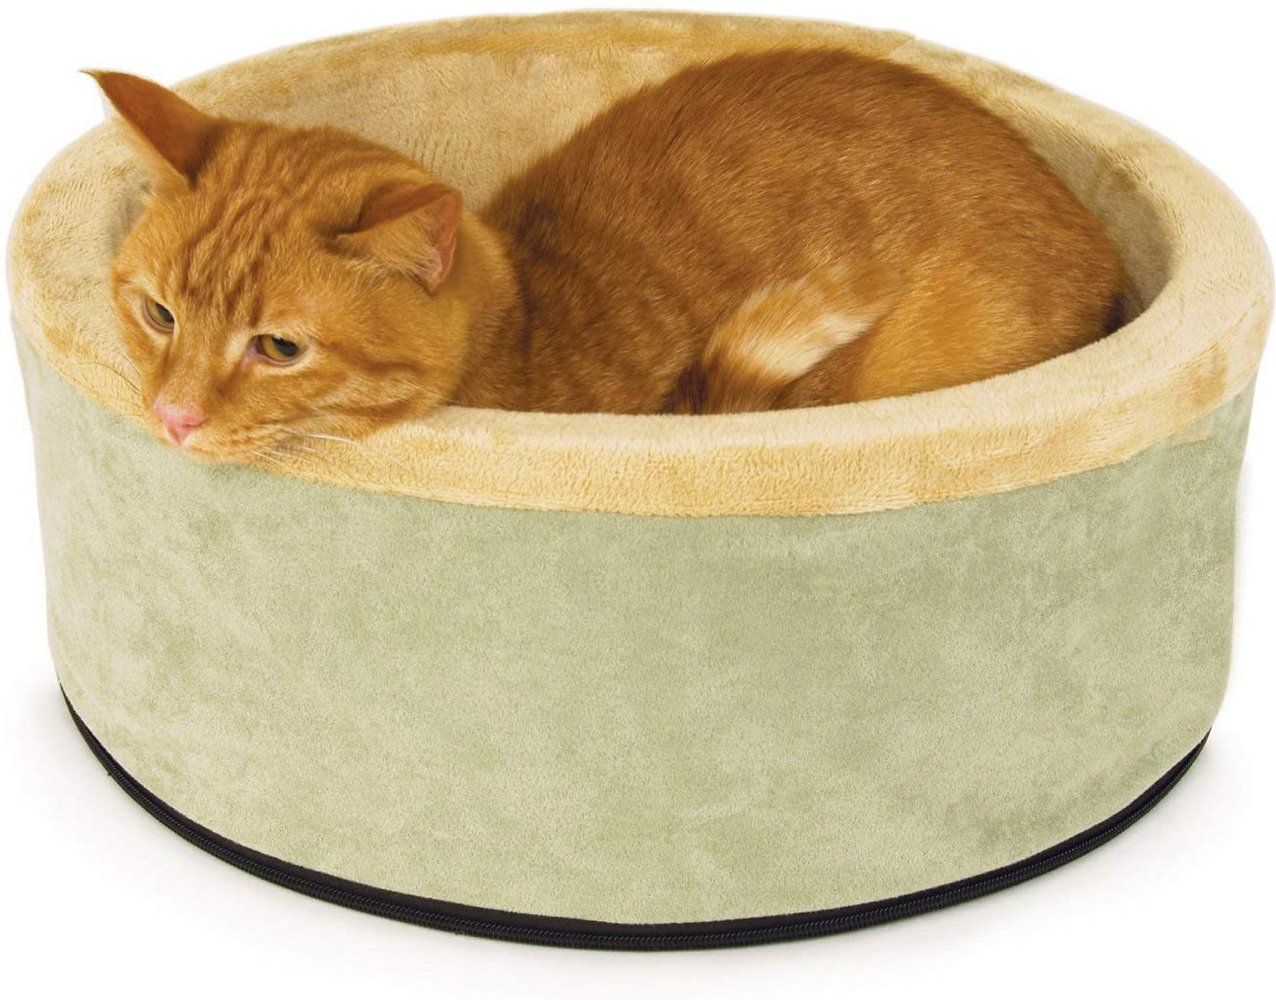 K&H Pet Products Thermo-Kitty Heated Cat Bed